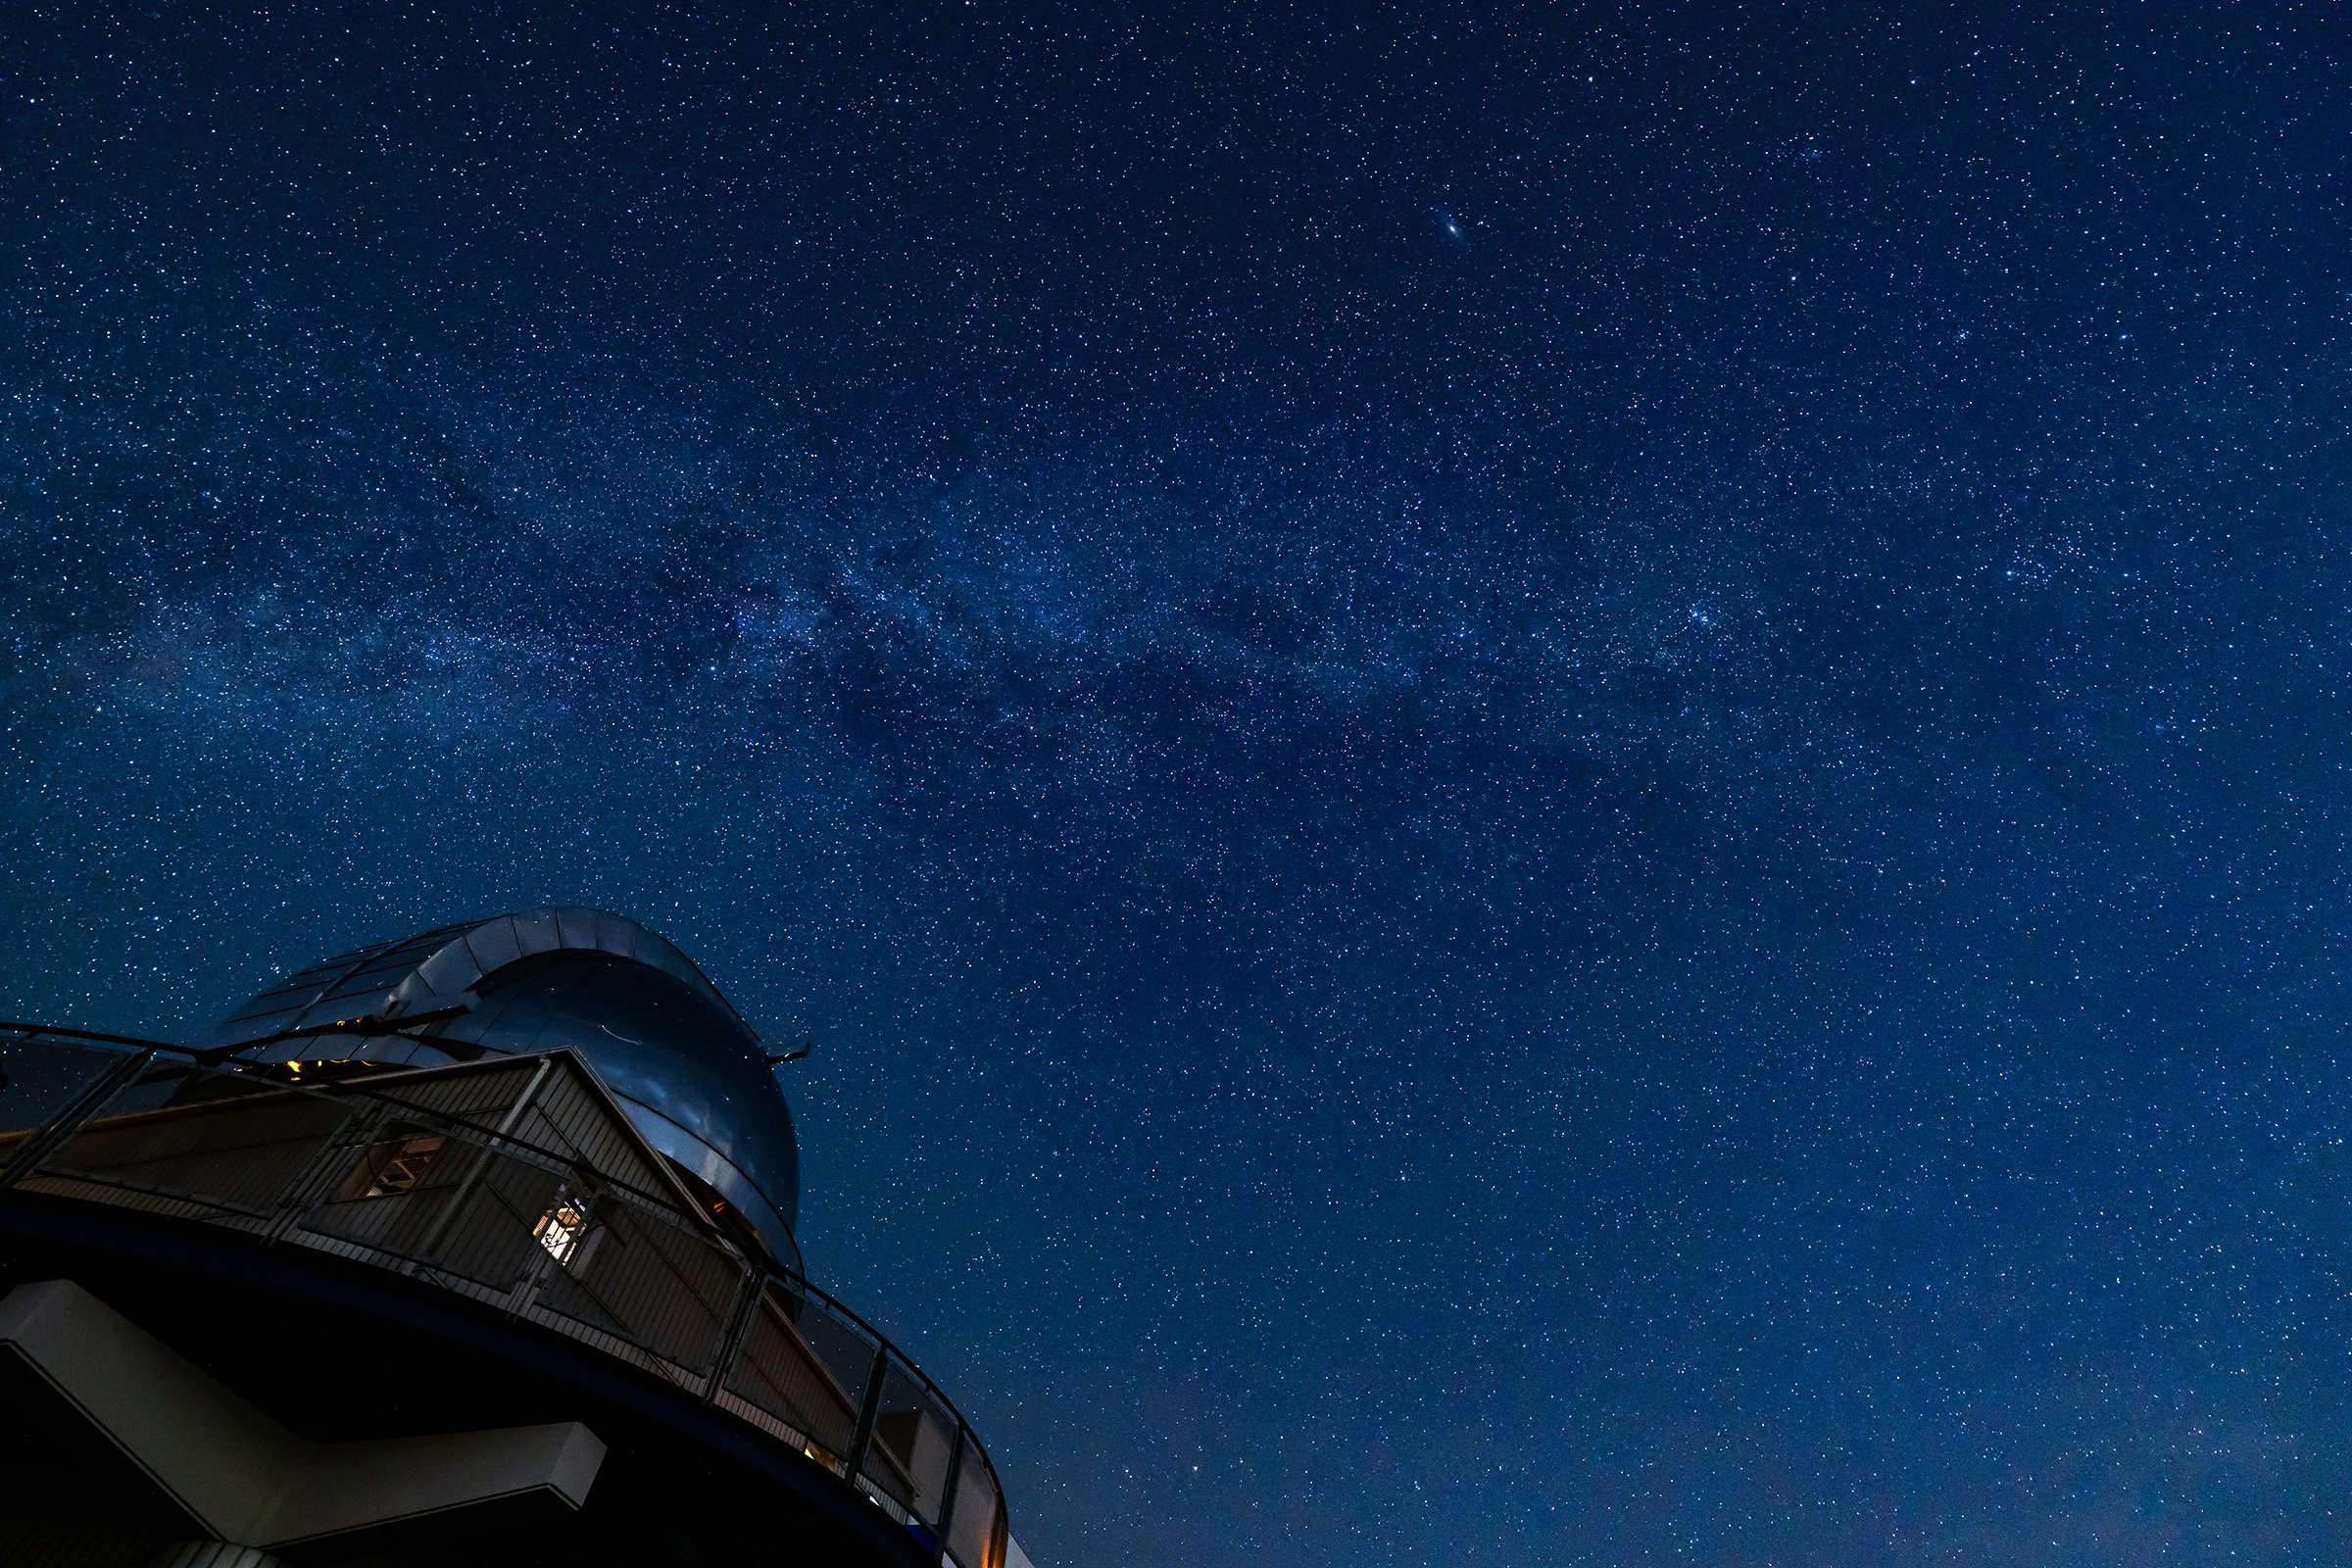 Photo: A sky full of shining stars seen above the Bisei Astronomical Observatory.